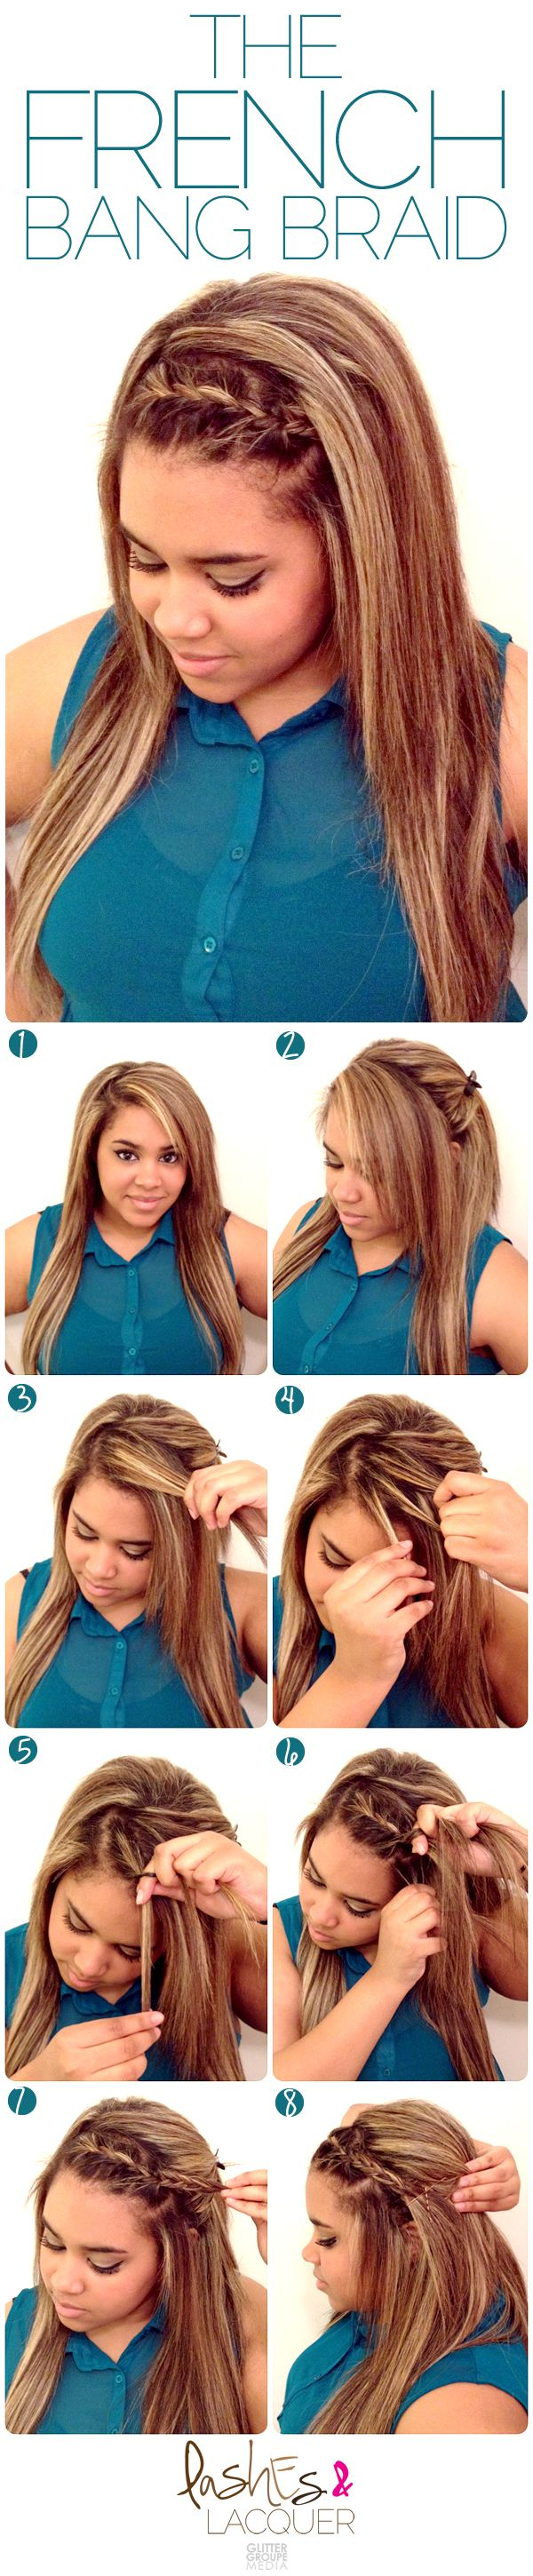 The French Braid Bang...this is so cute, too bad i can never do it right. lol